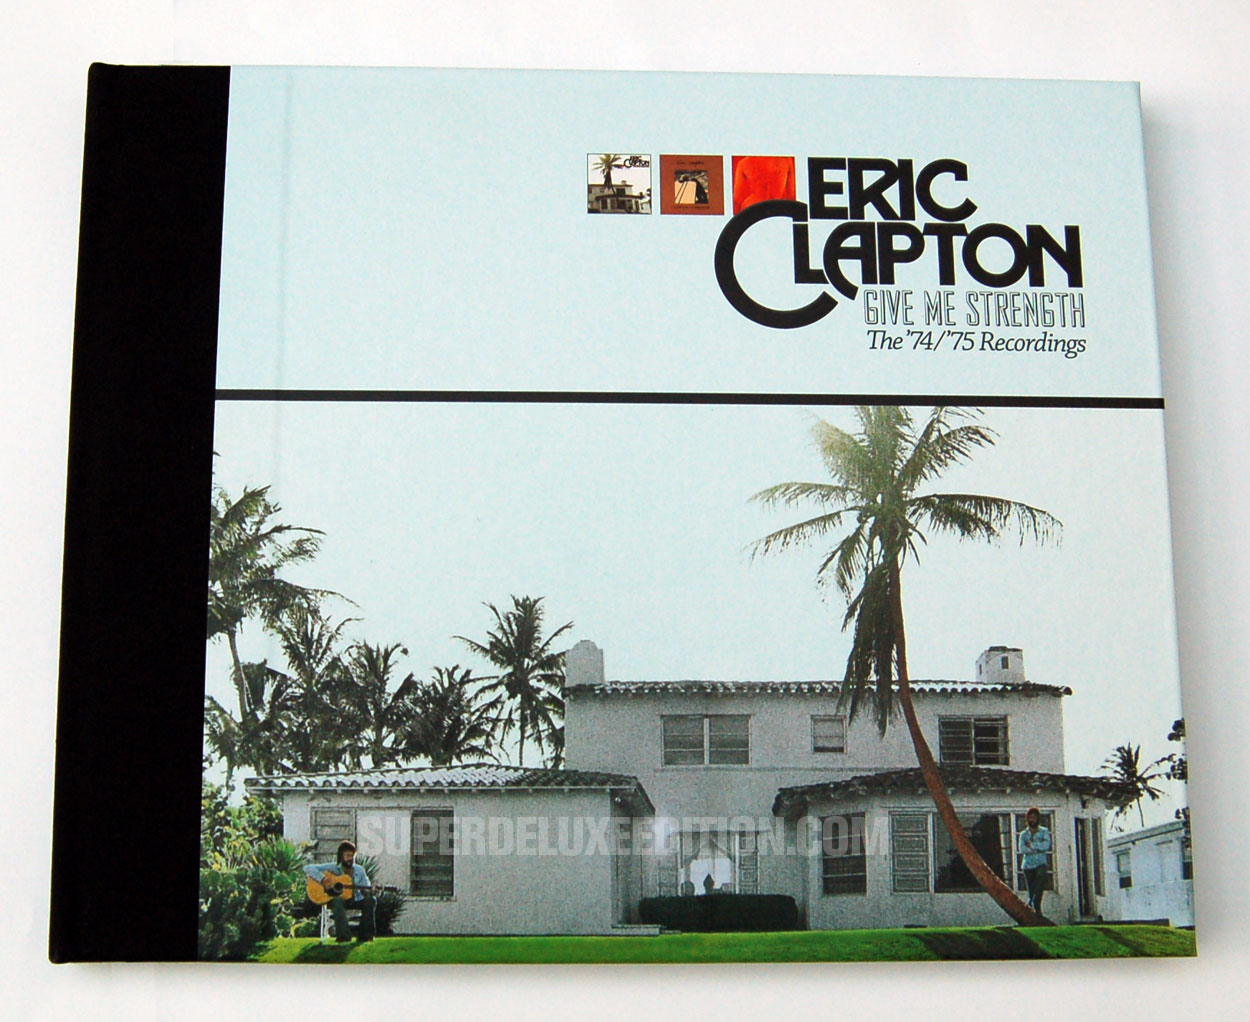 FIRST PICTURES: Eric Clapton: Give Me Strength 1974-75 Recordings